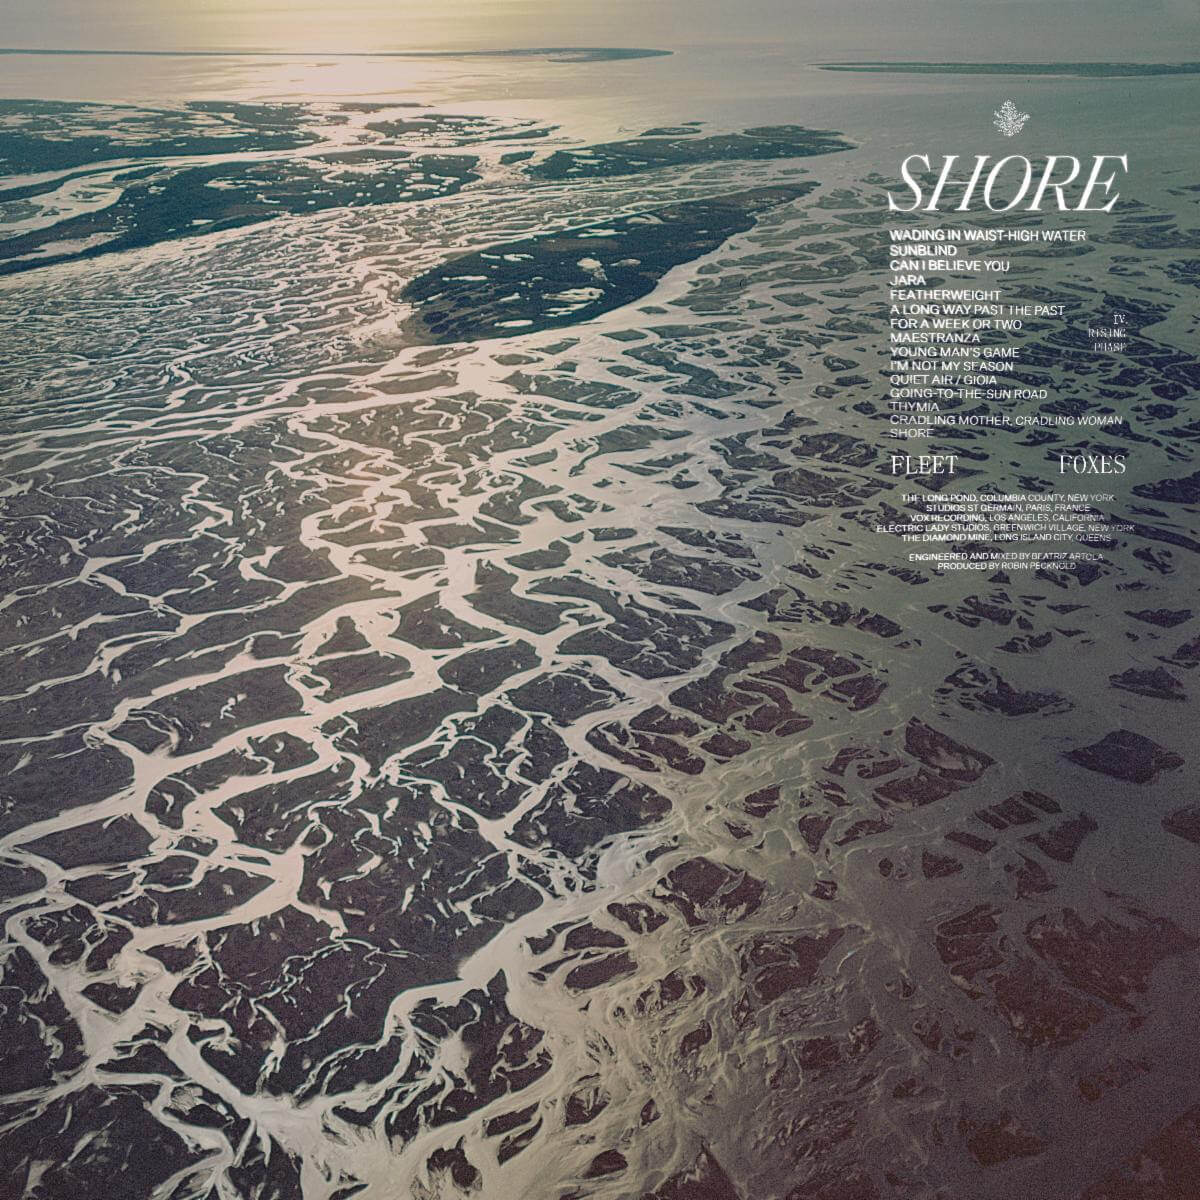 Shore by Fleet Foxes album review by Adam Fink for Northern Transmisions